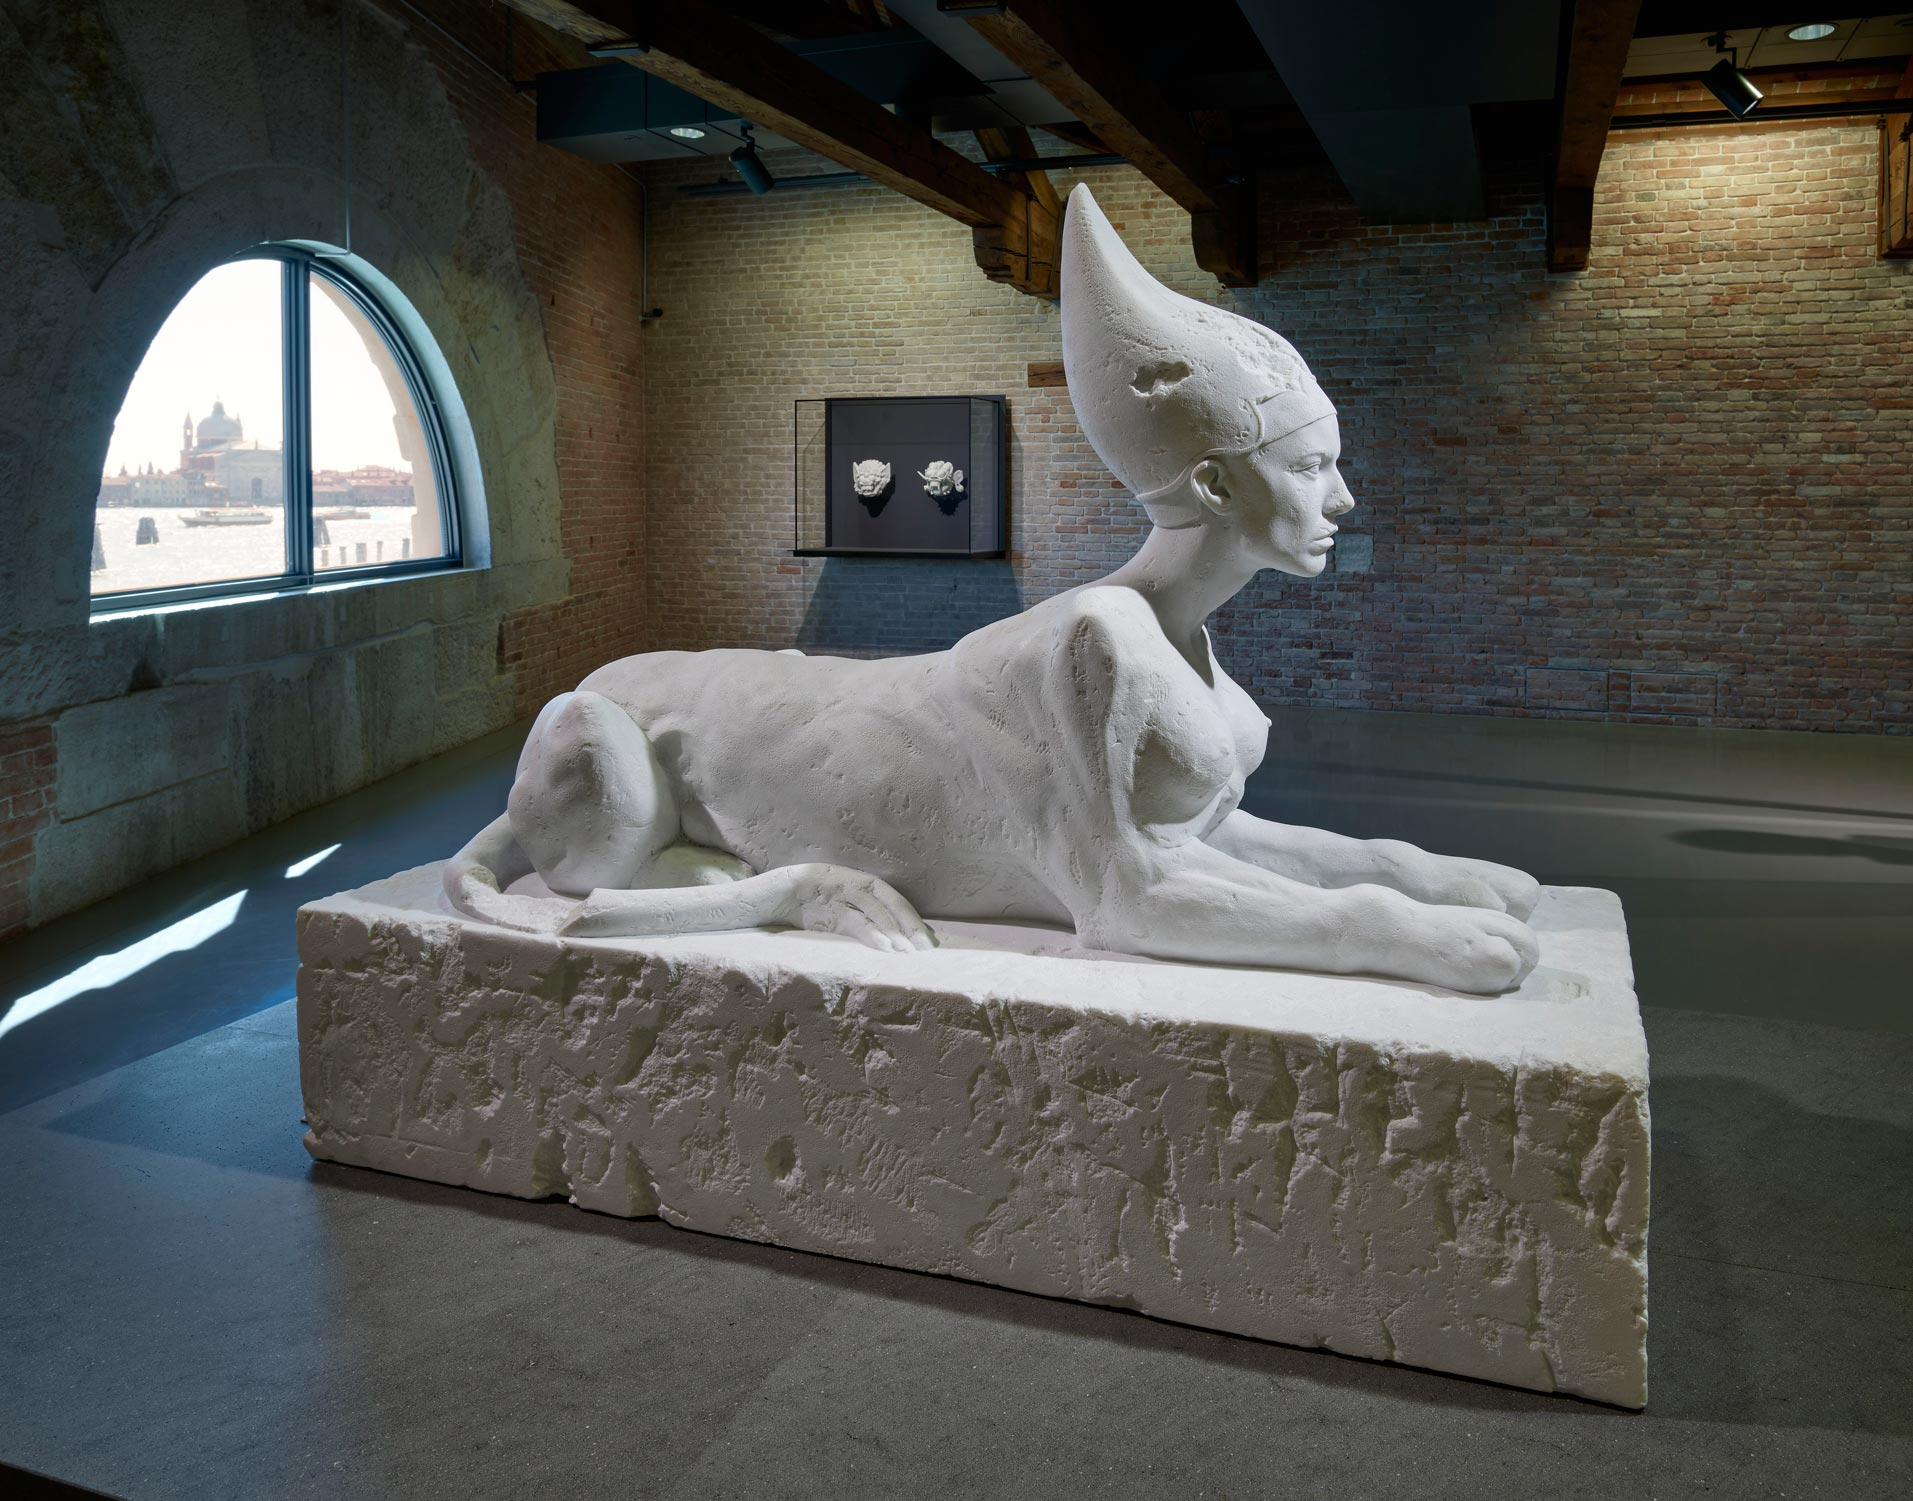 Room 4: (left to right) Damien Hirst, Pair of Masks (left), Sphinx (right). Photographed by Prudence Cuming Associates © Damien Hirst and Science Ltd. All rights reserved, DACS/SIAE 2017